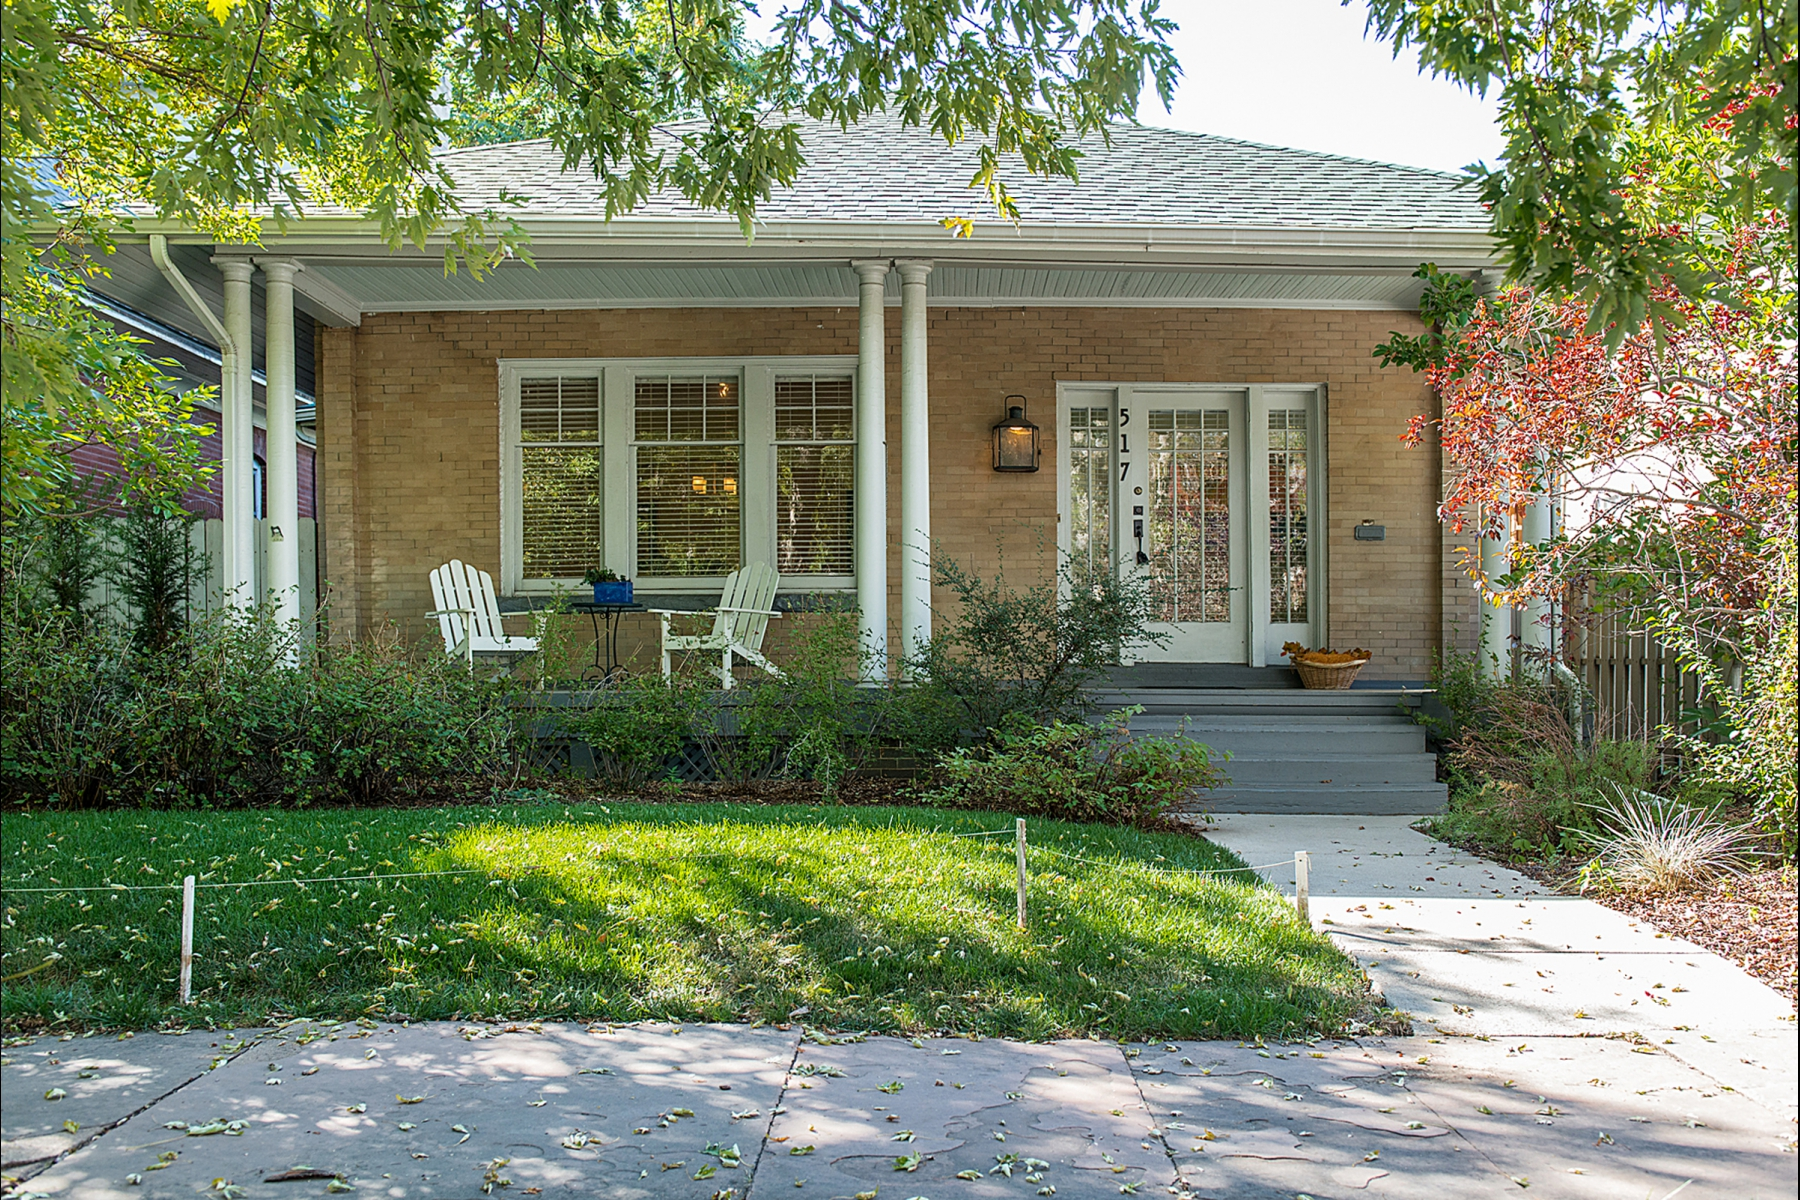 Single Family Home for Sale at Charming bungalow with fabulous upgrades in the heart of the city! 517 North Downing Street Denver, Colorado 80218 United States